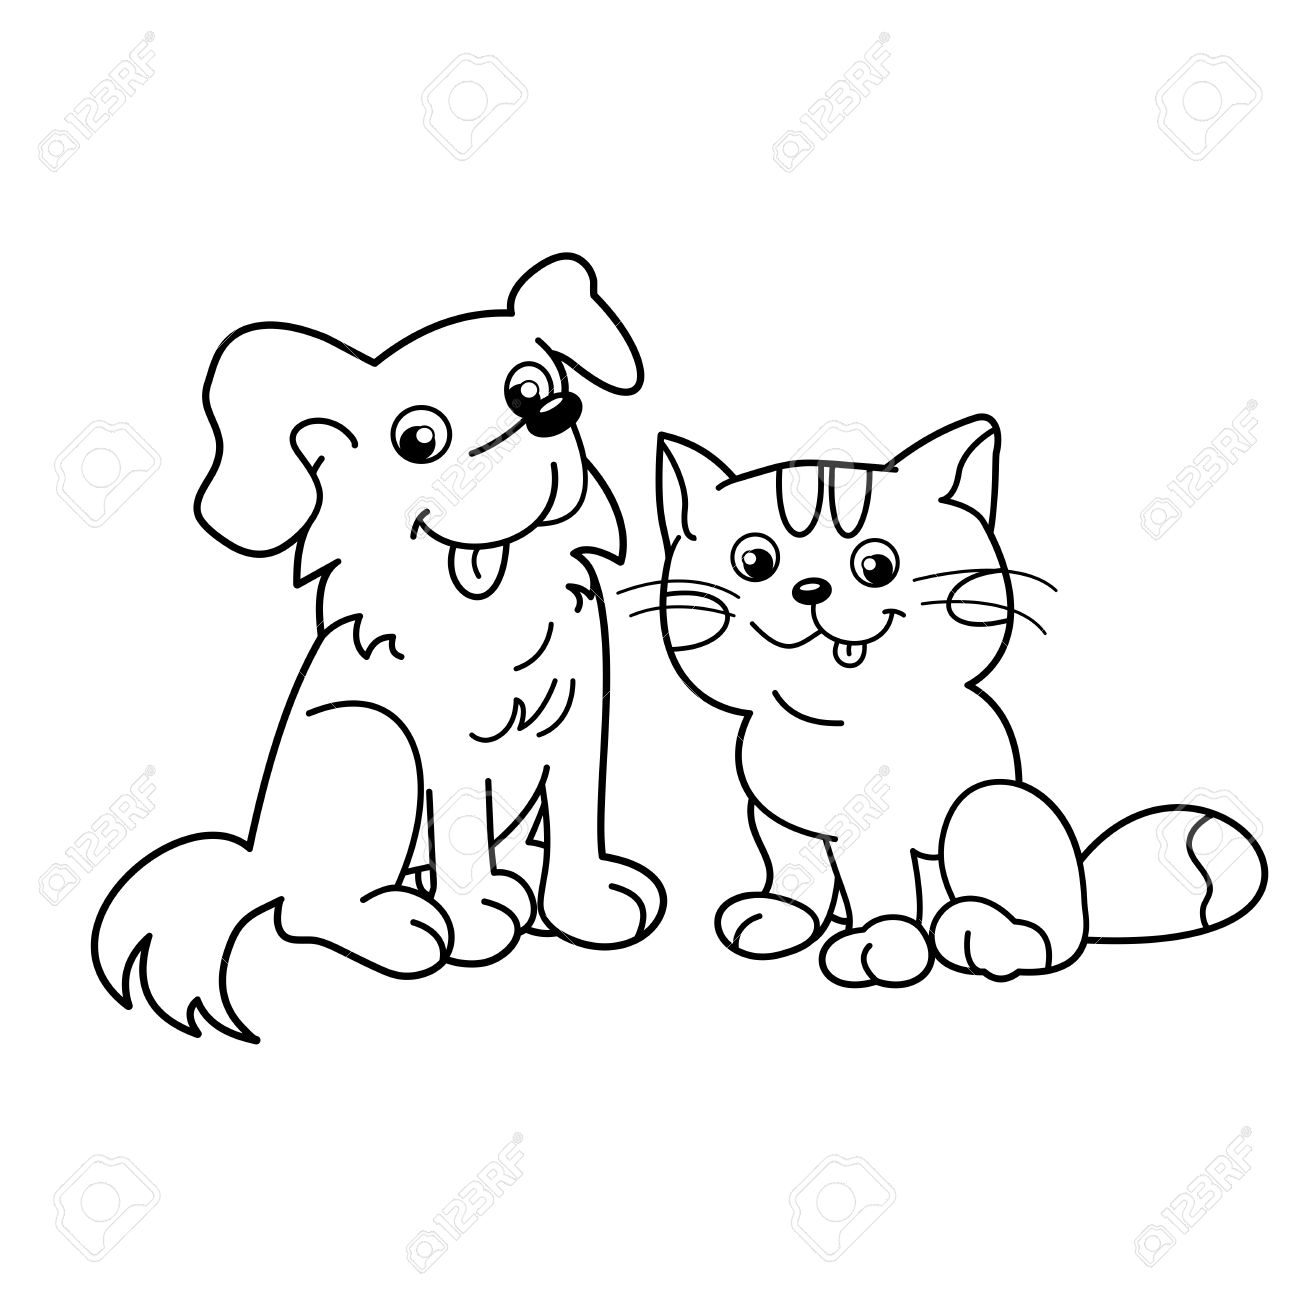 Dog Drawing Cartoon at GetDrawings.com | Free for personal use Dog ...